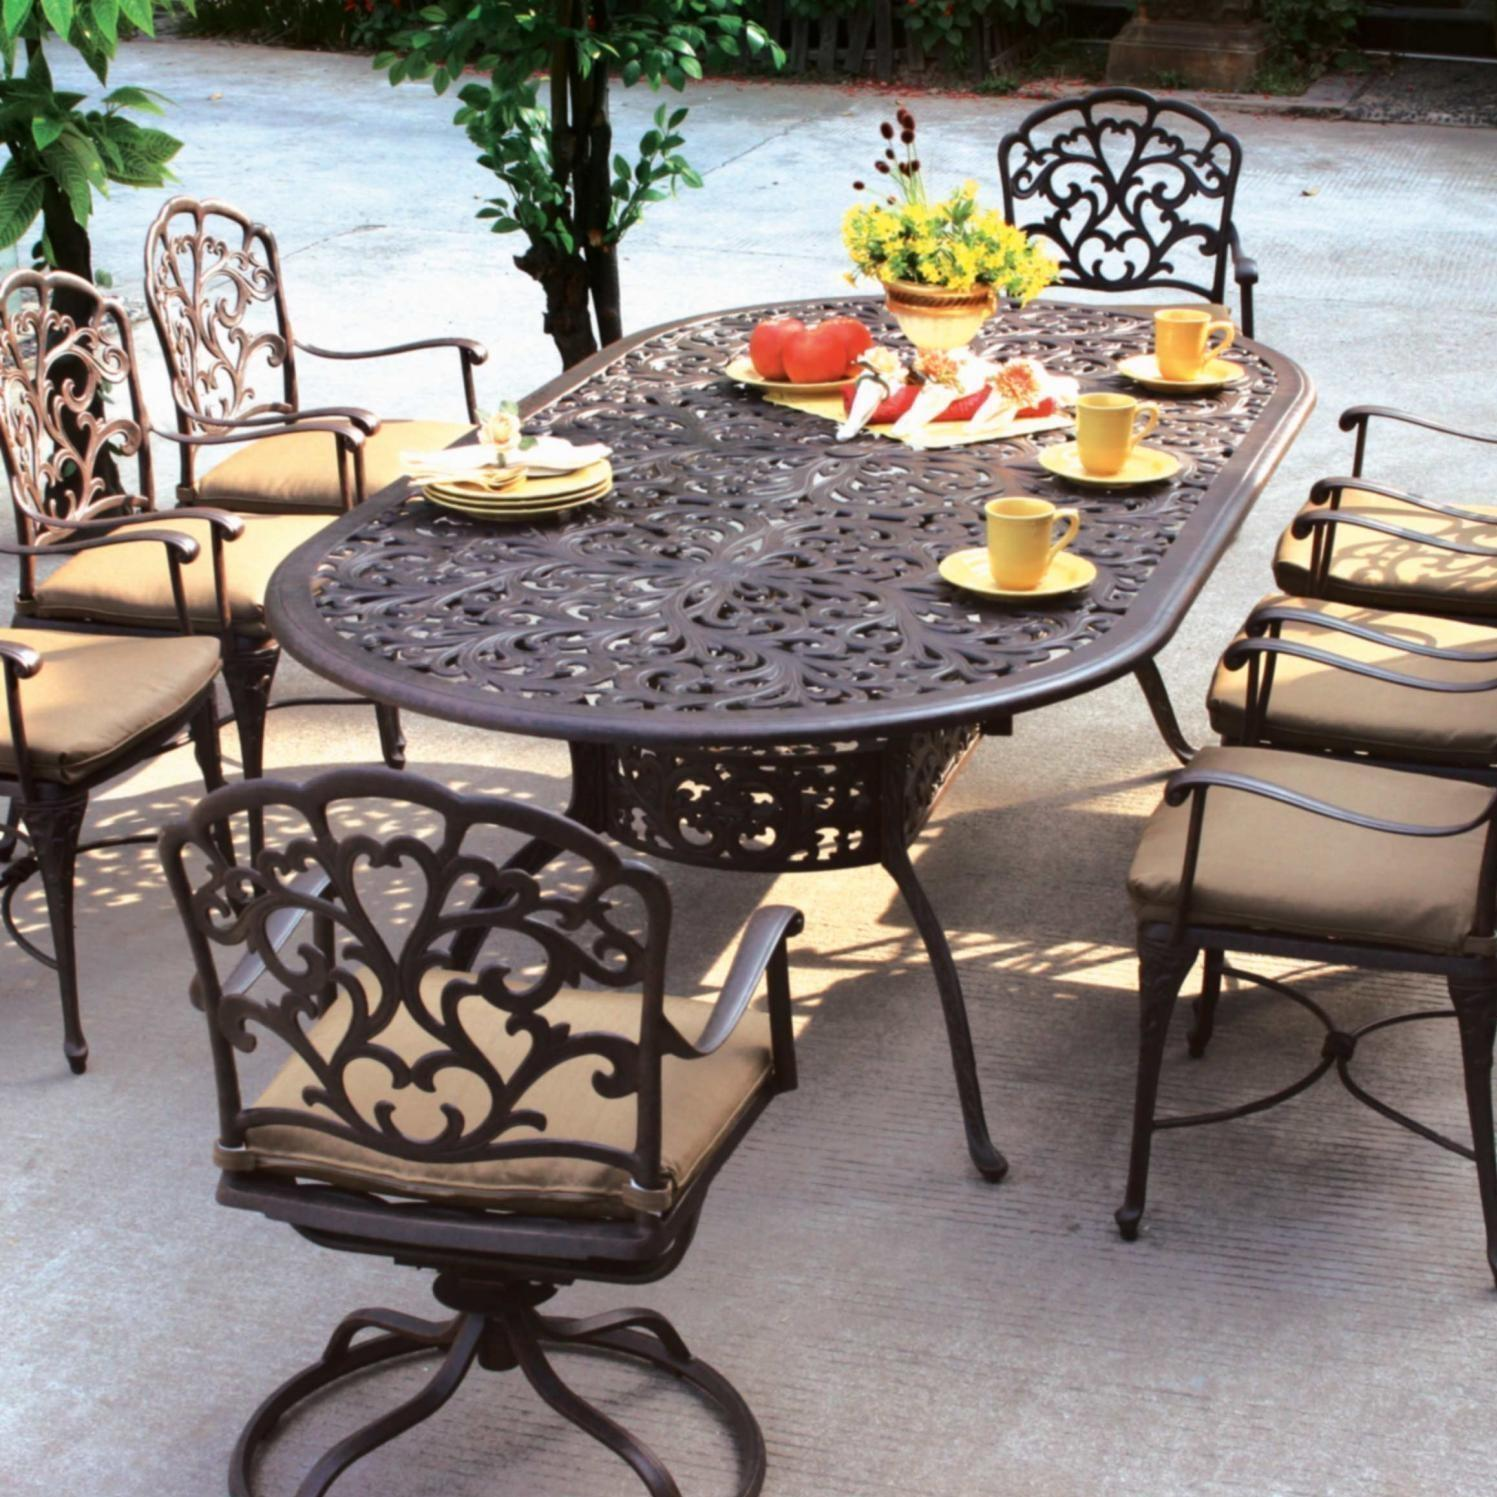 Darlee Catalina 8 Person Patio Dining Set   Antique Bronze